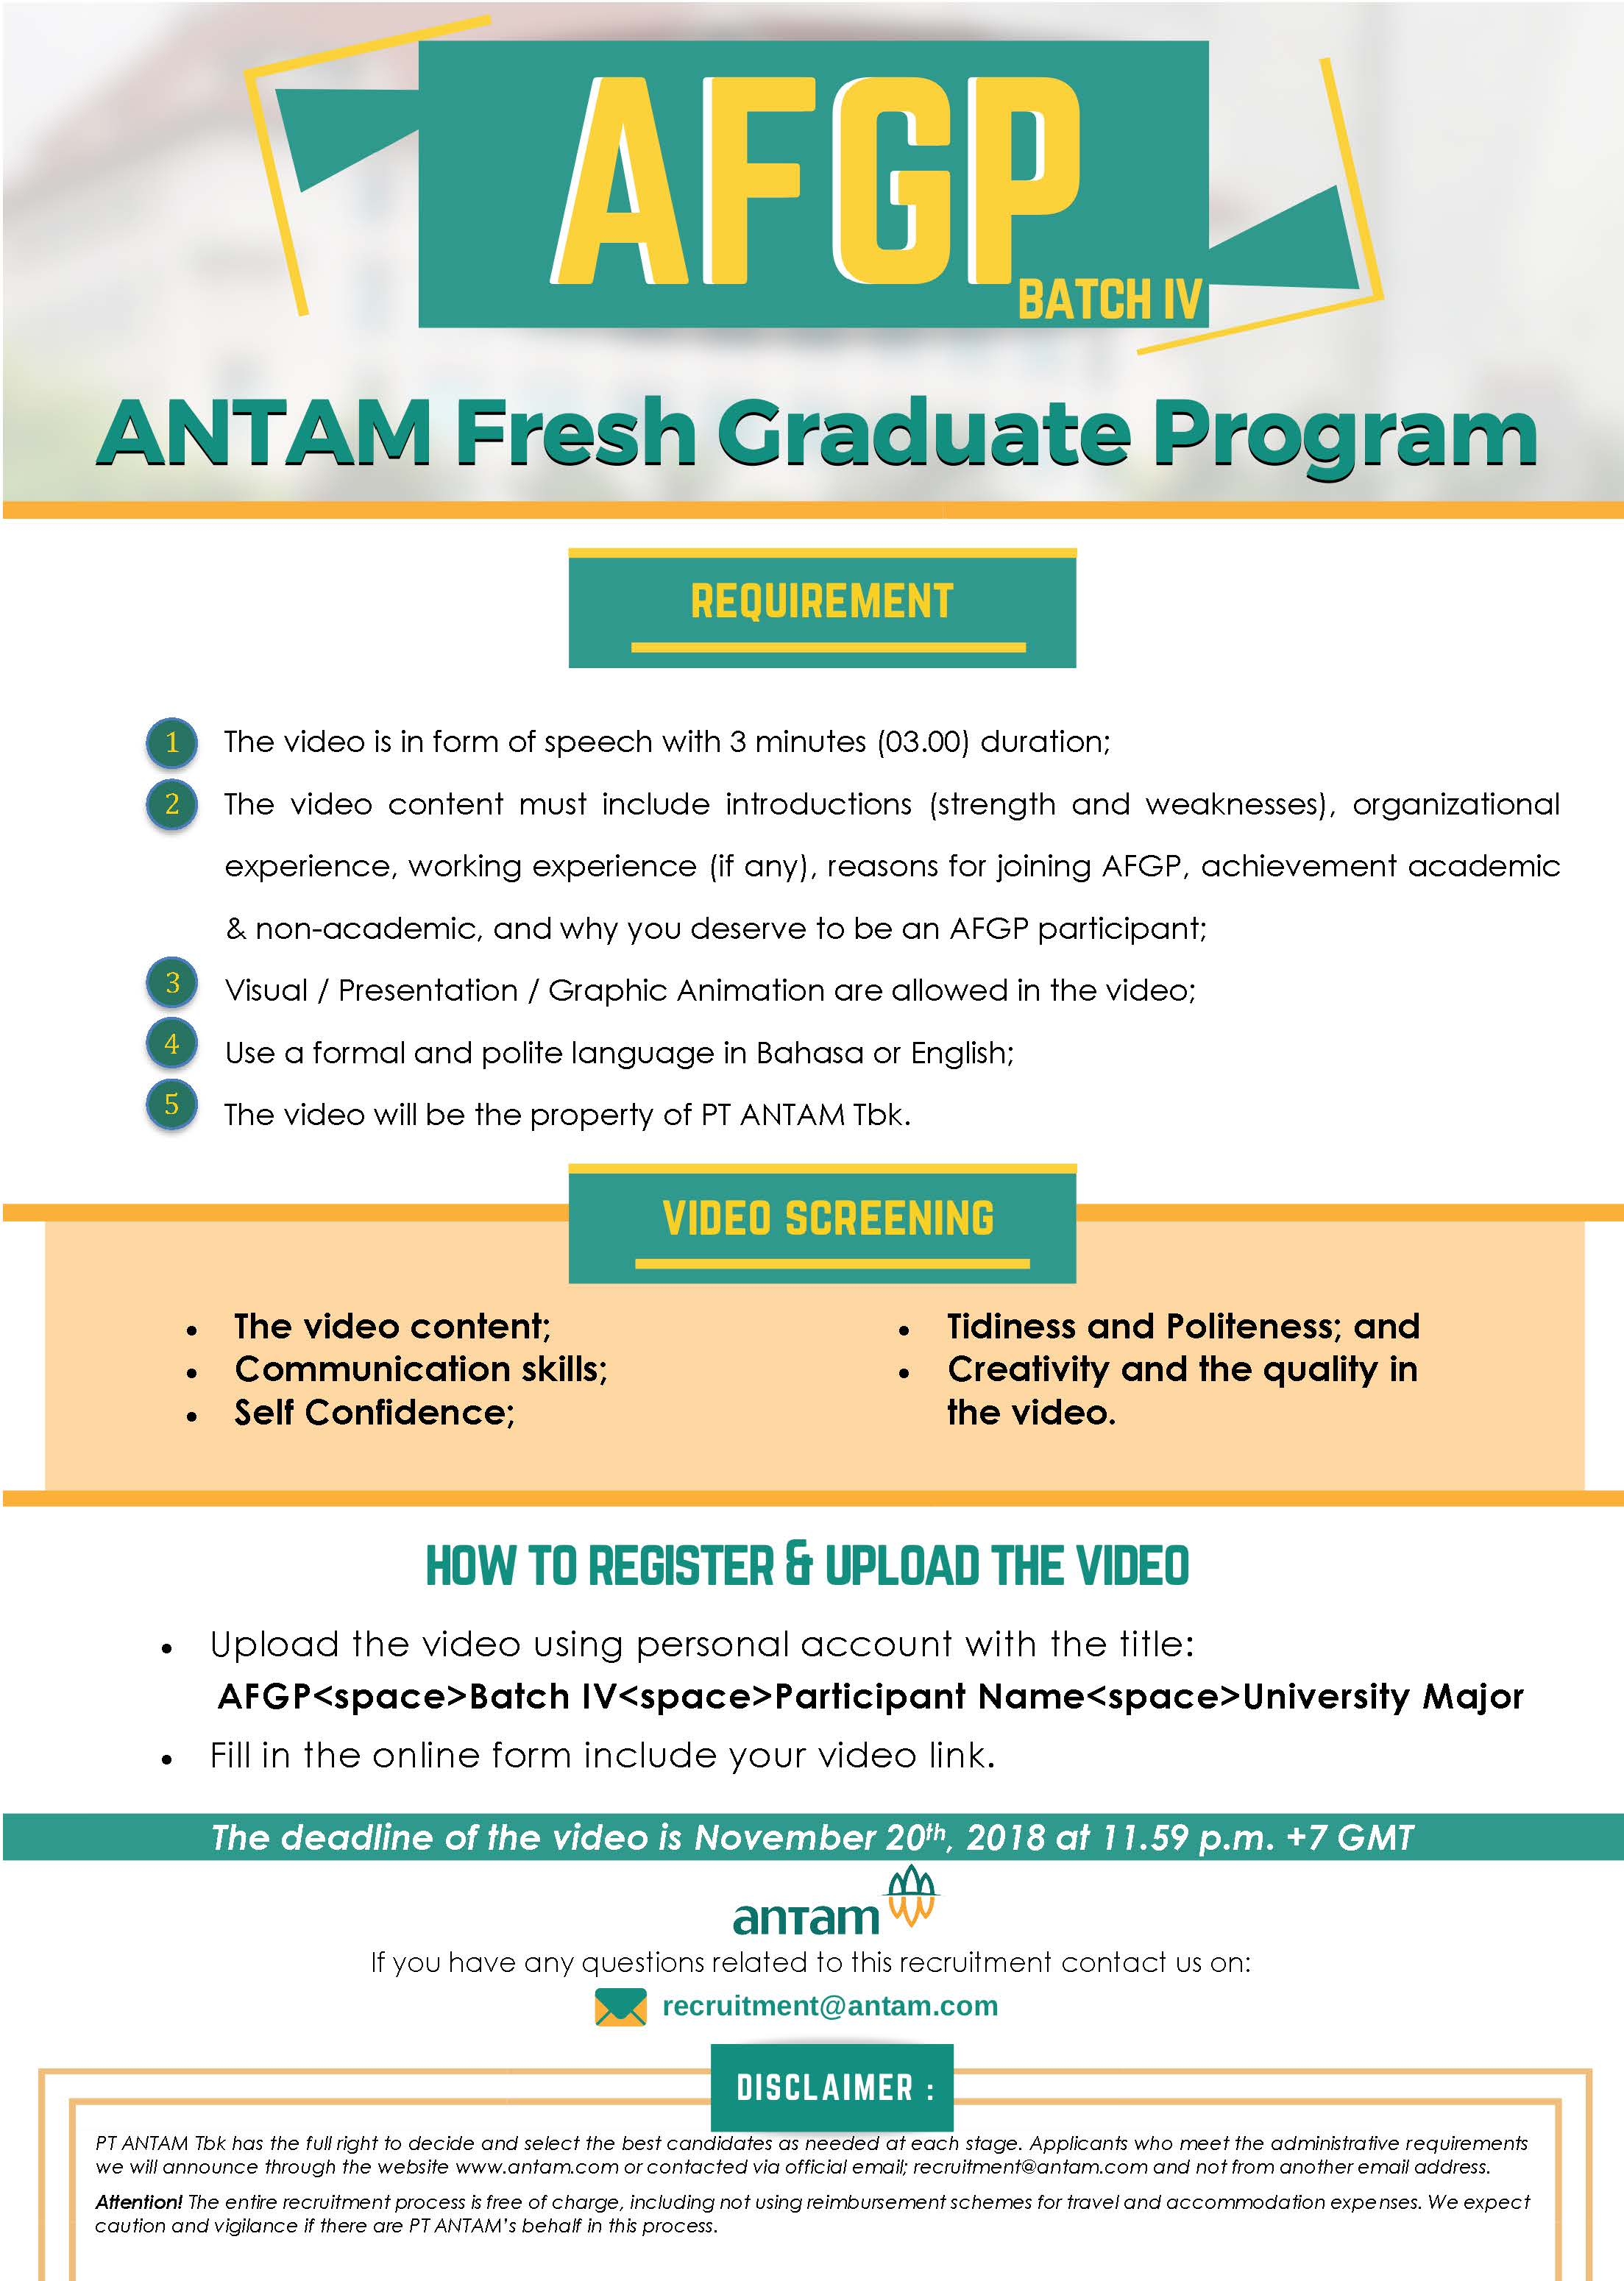 rekrutmen antam 2018, recruitment antam